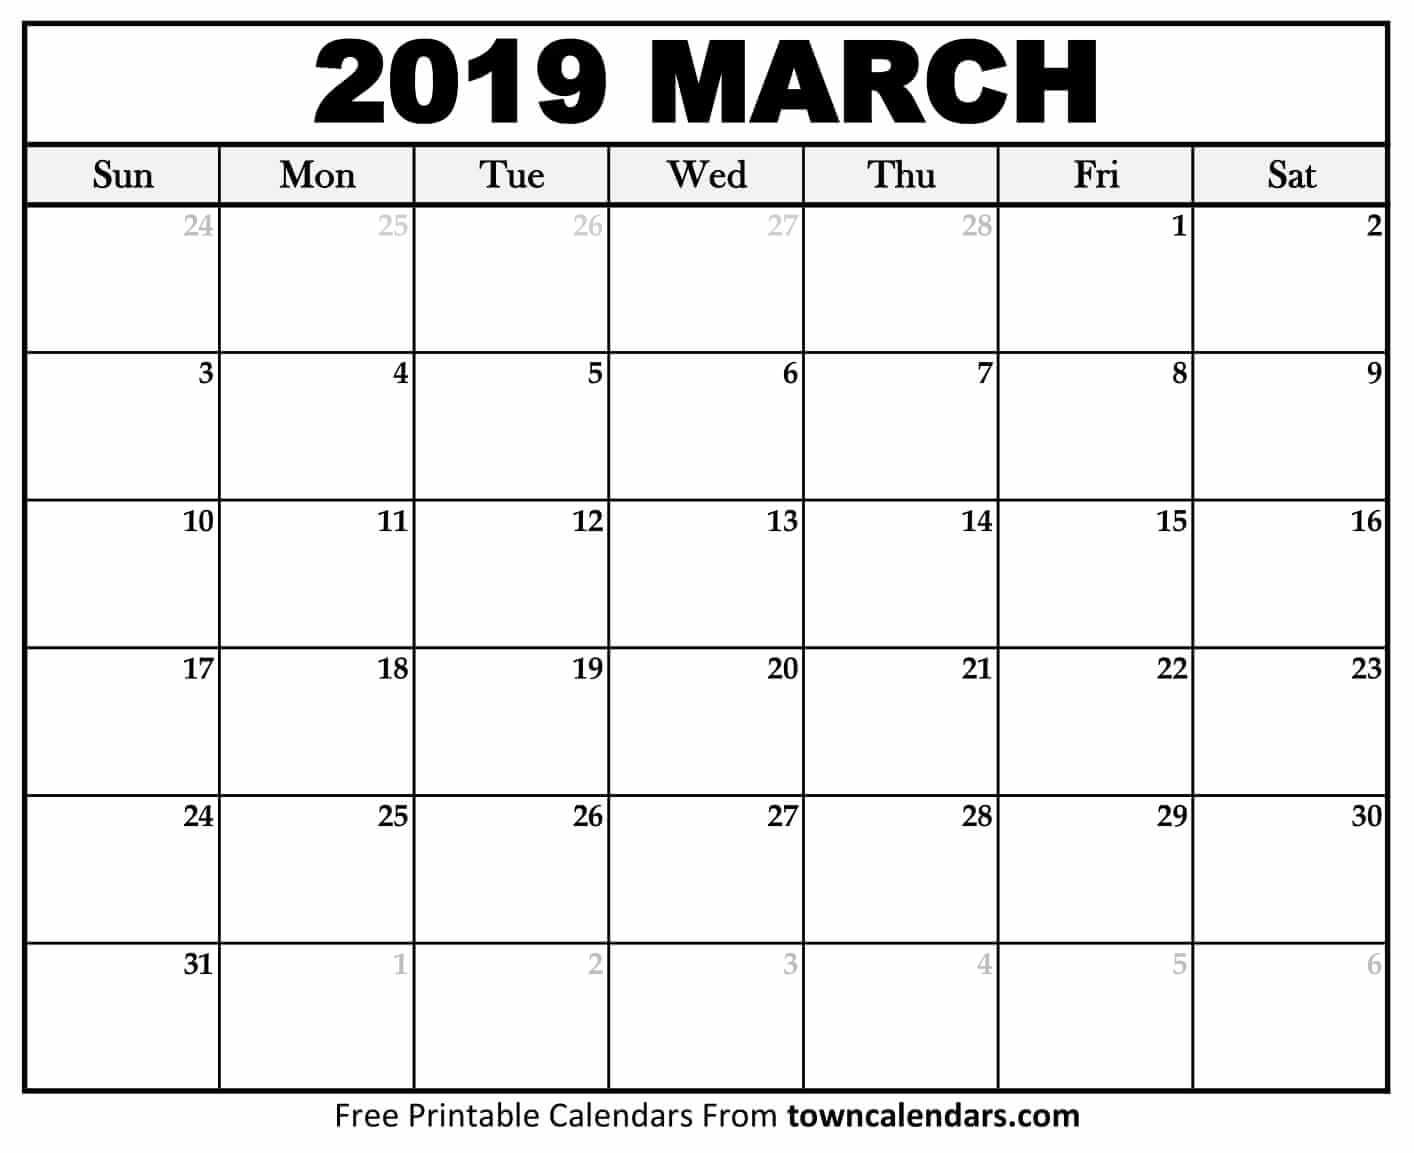 Printable March 2019 Calendar – Towncalendars March 1 2019 Calendar